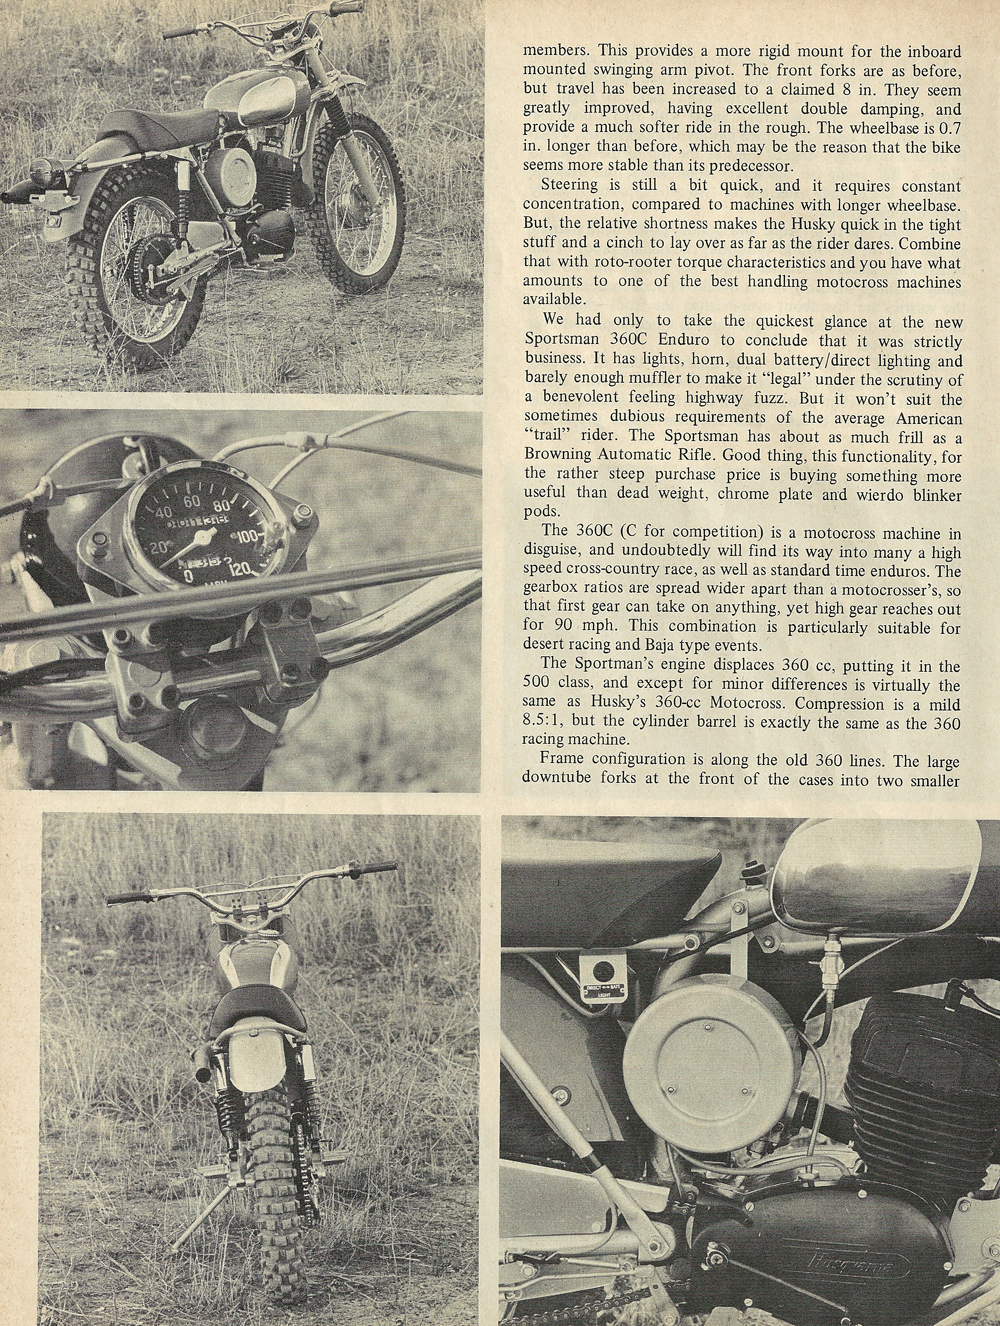 1969 Husqvarna 400 Cross and Sportsman 360C Enduro road test 5.jpg